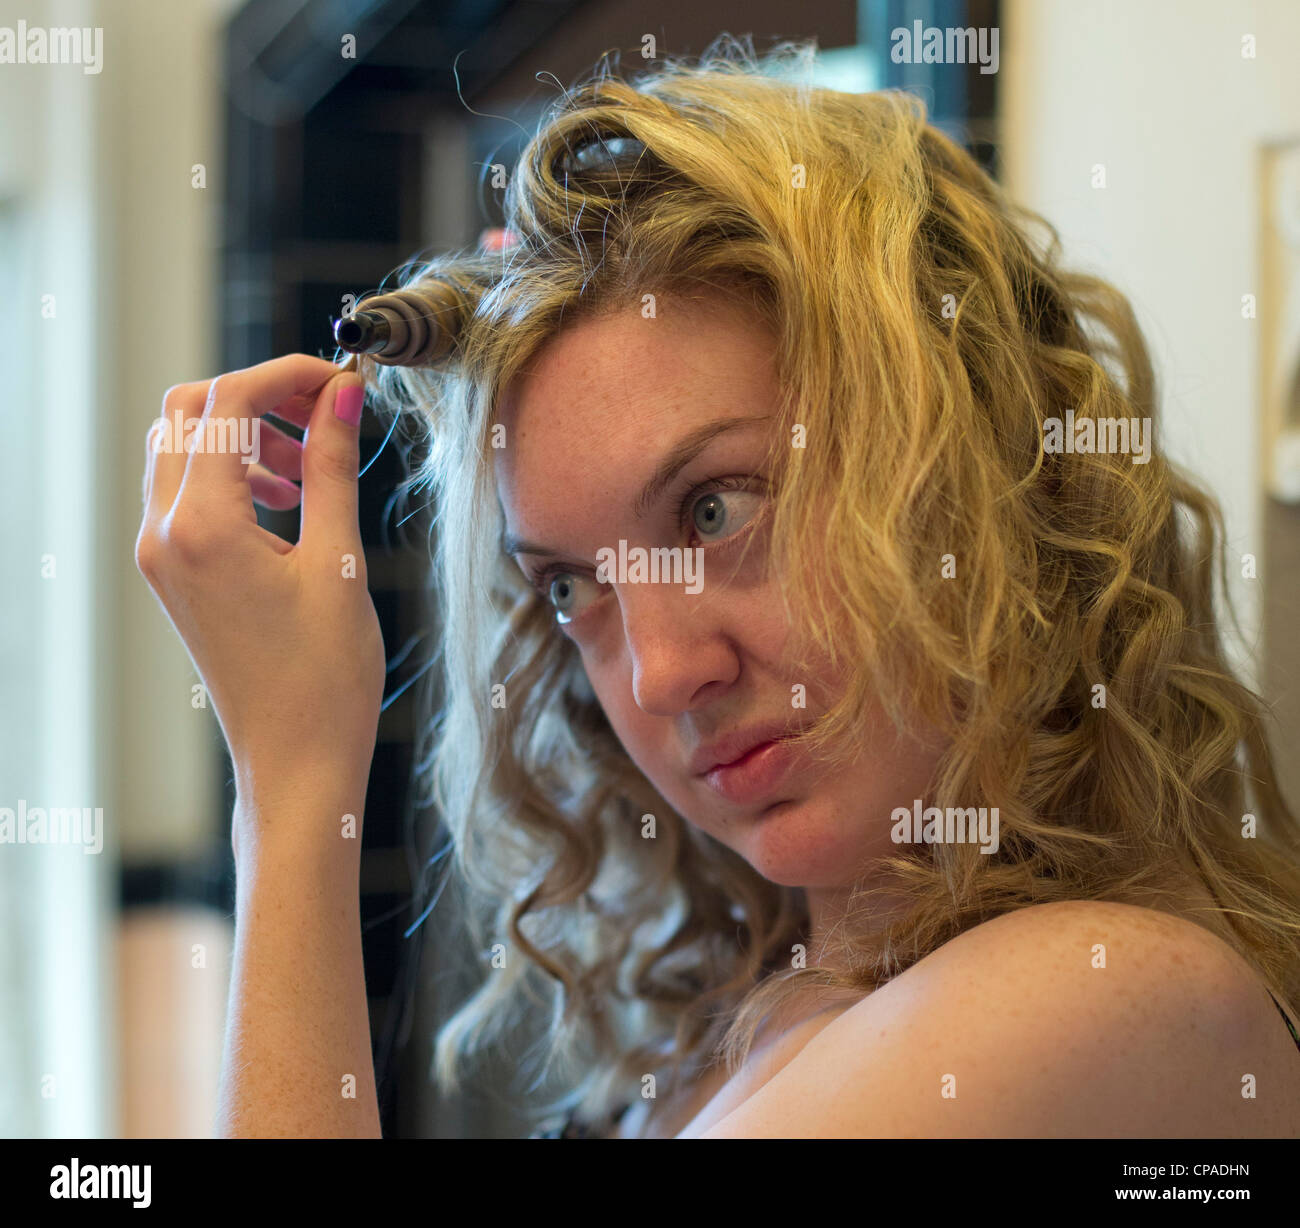 Mariel West, 24, uses a curling iron to curl her hair. - Stock Image